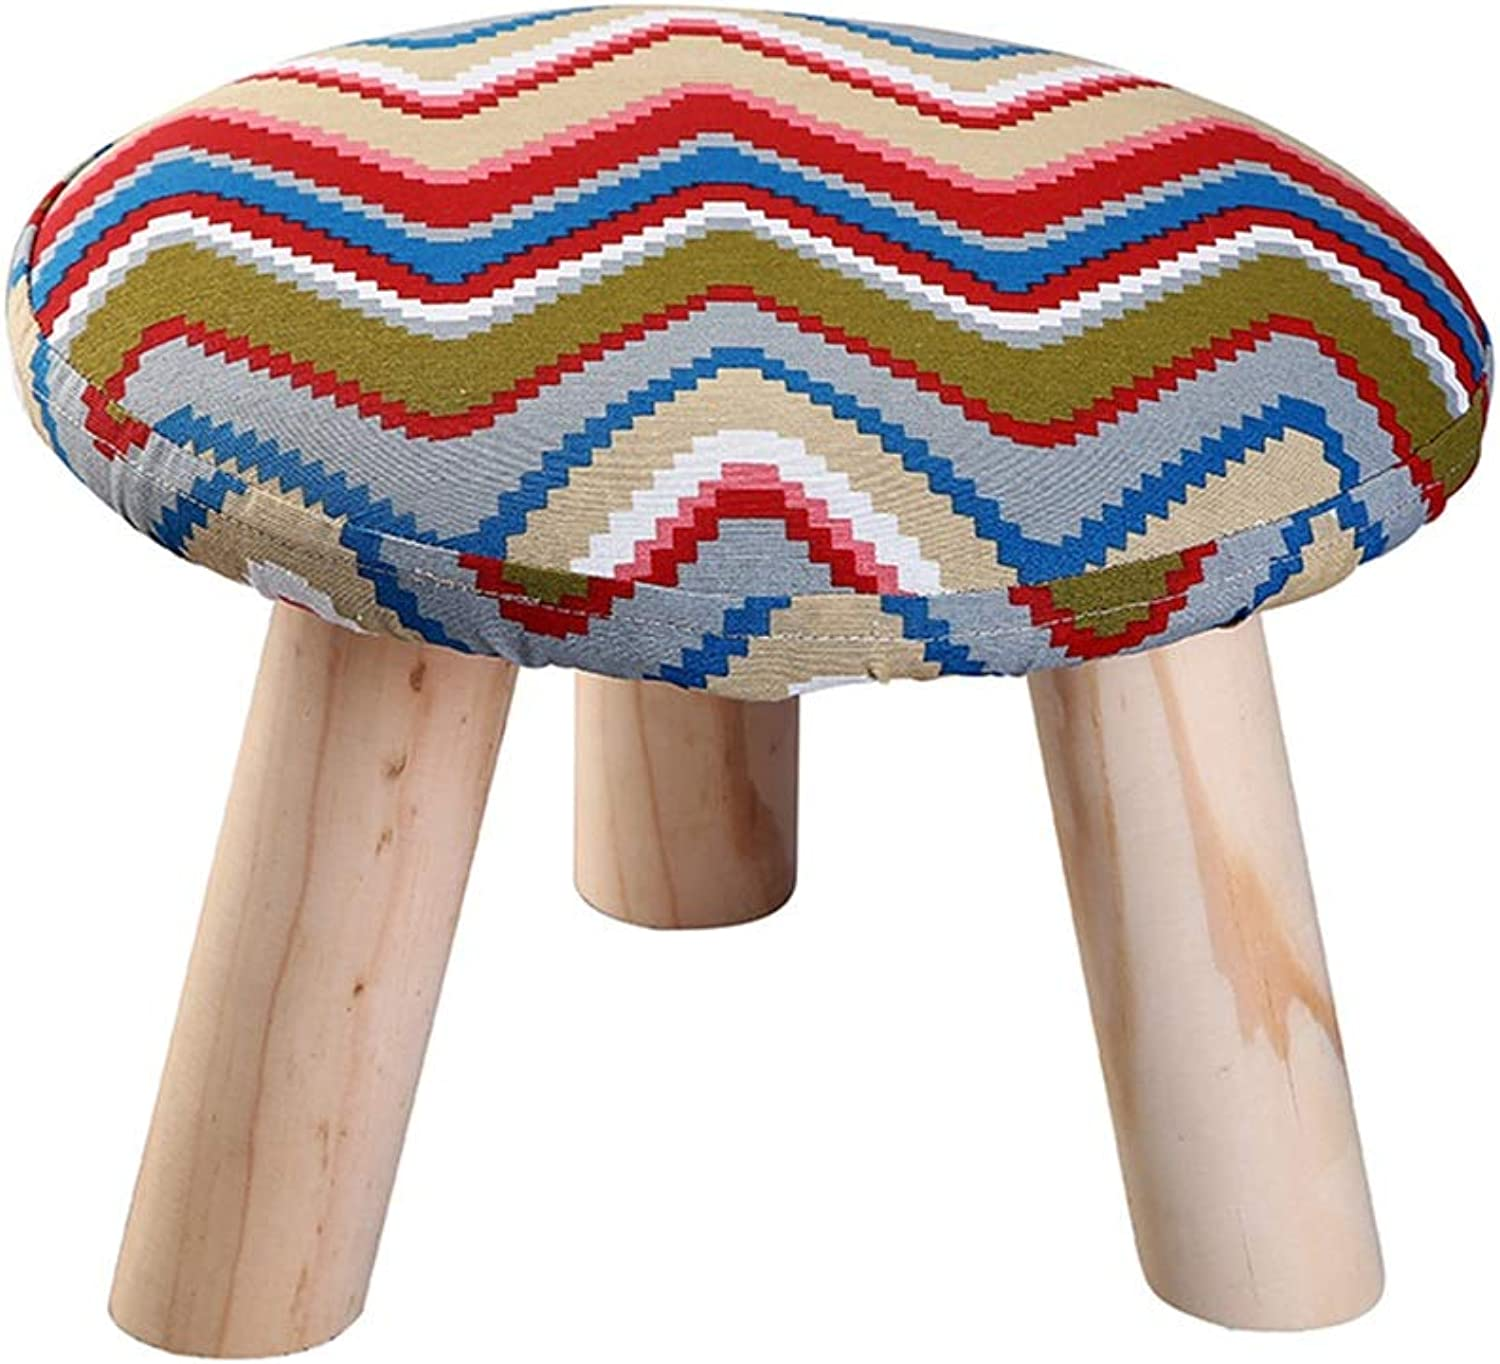 XRXY Stool, Solid Wood Stool, Foyer Changing shoes Stool, Low Stool, Cloth Round Stool, Living Room Sofa Small Square Stool, 5 colors, 3 Shapes (color   A, Size   1 )